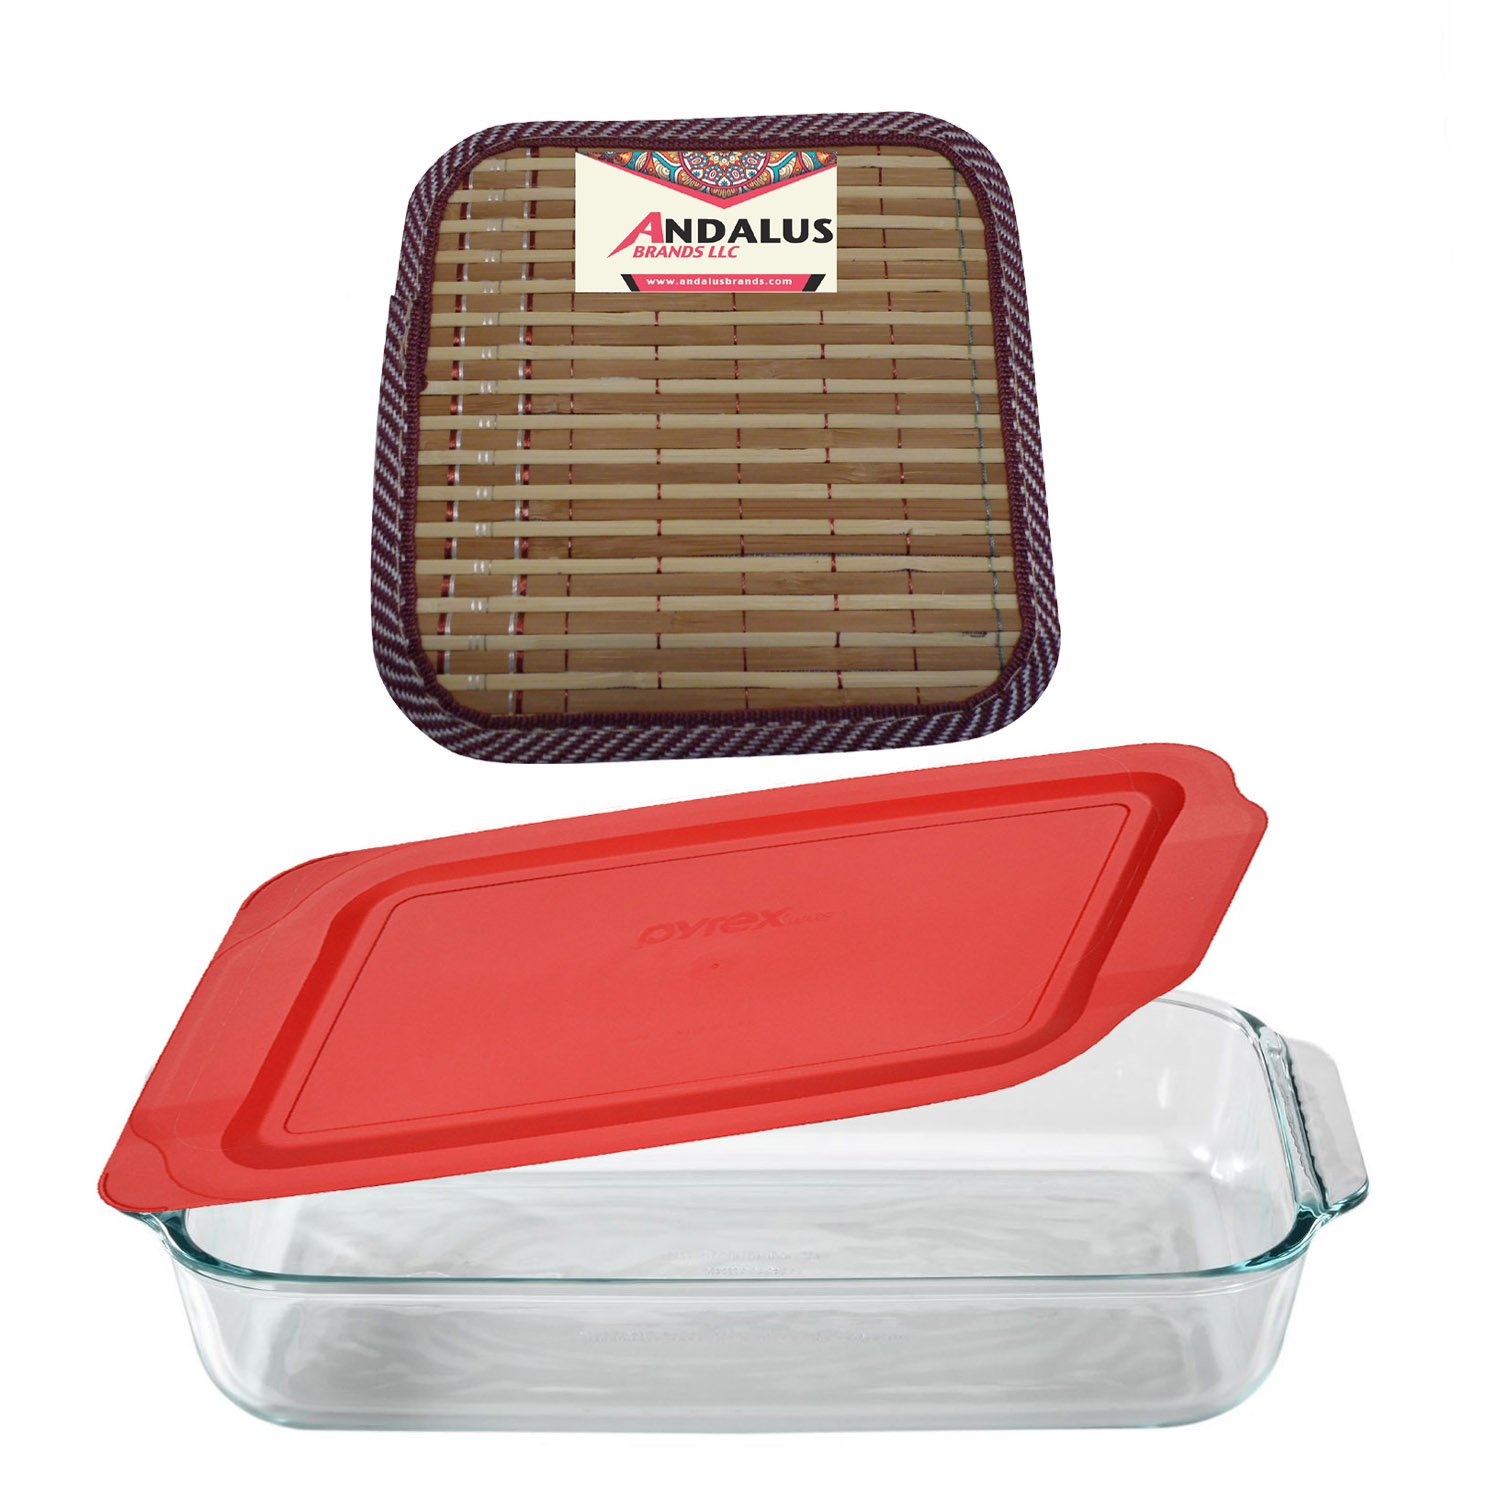 Pyrex Basics 3 Quart Glass Oblong Baking Dish with Red Plastic Lid, Lasagna Pan, Includes Bamboo Hot Pad By Andalus